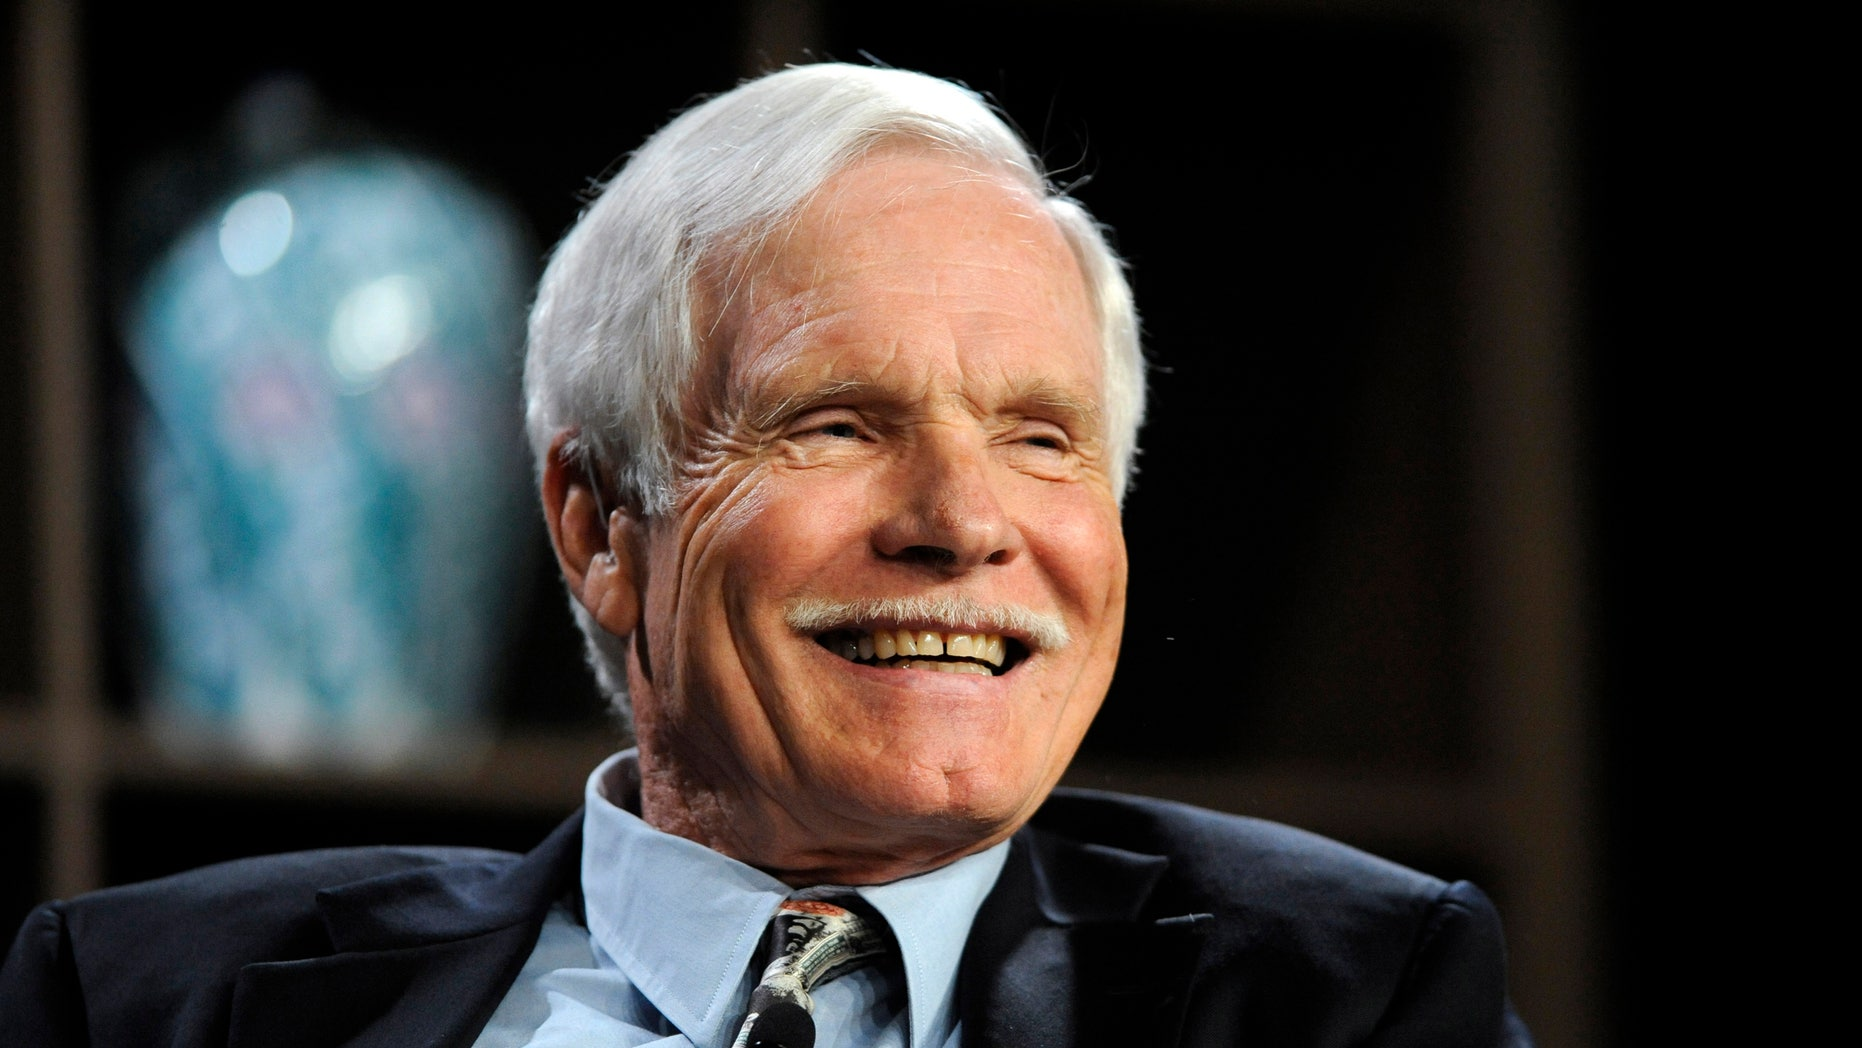 """Turner Enterprises Inc. Chairman Ted Turner participates in the """"Ted Turner and T. Boone Pickens on America's Energy Future"""" panel at the 2010 Milken Institute Global Conference in Beverly Hills, California April 26, 2010. REUTERS/Phil McCarten (UNITED STATES - Tags: BUSINESS MEDIA ENERGY) - RTXS6RO"""